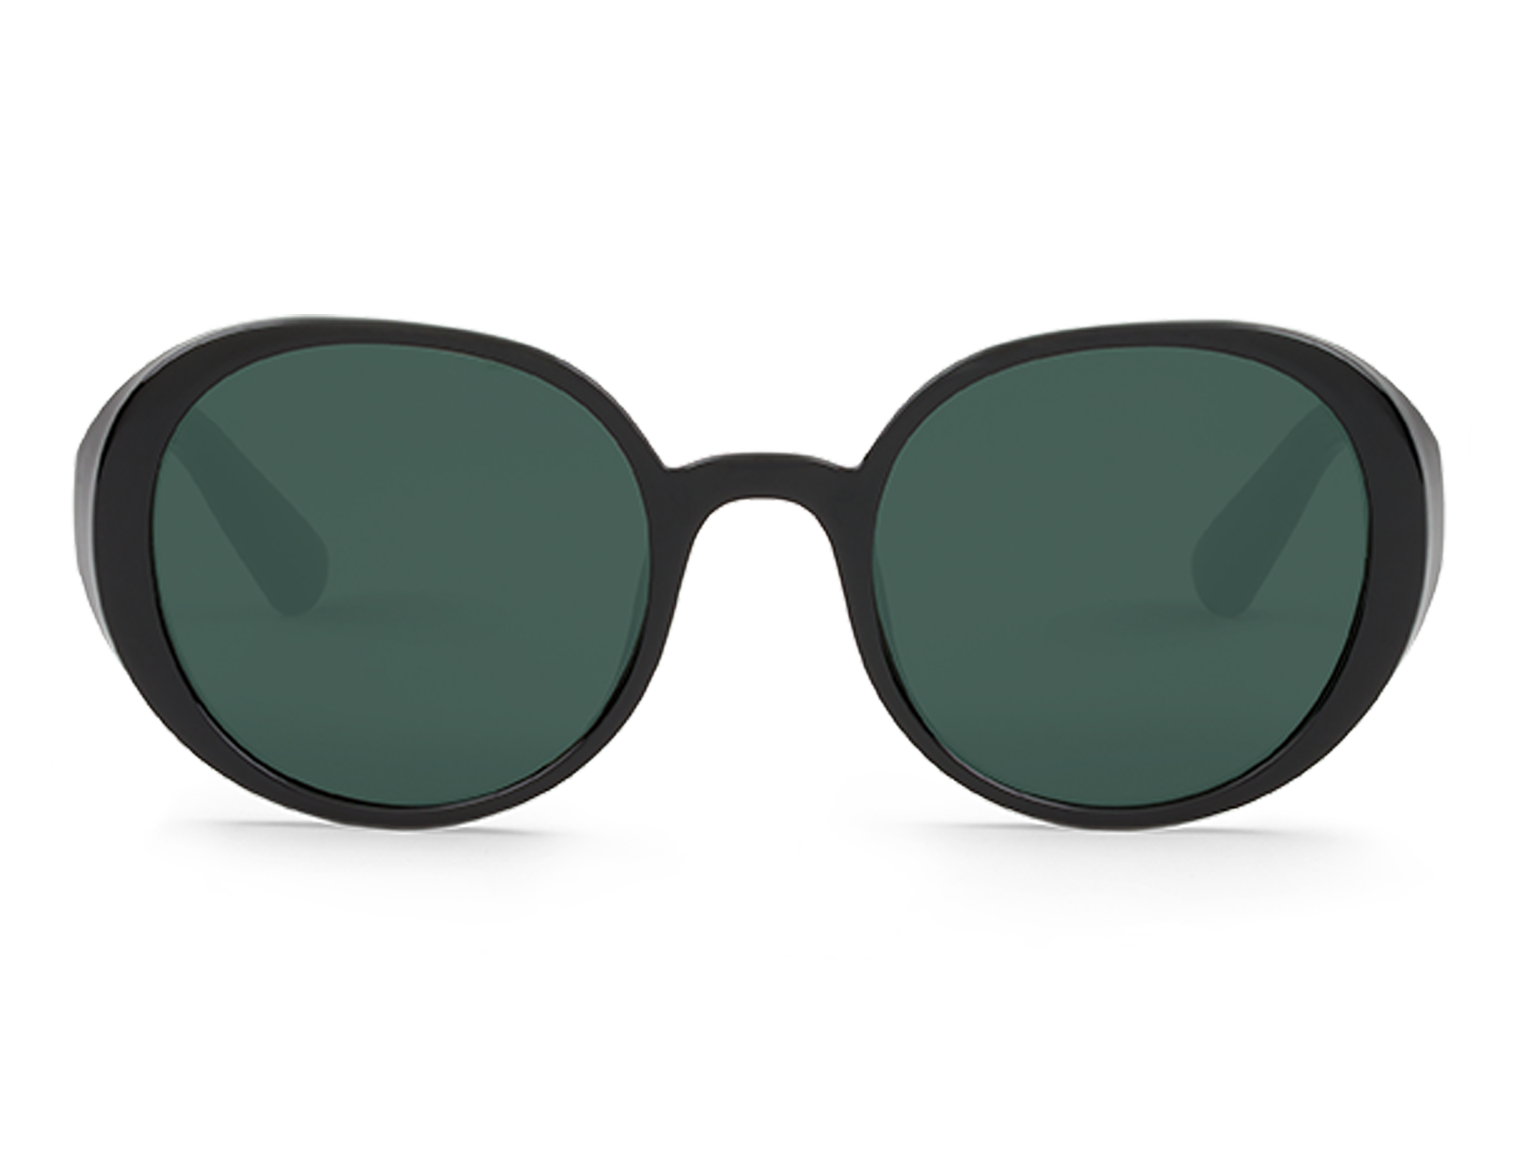 ARROIOS | BLACK with classical lenses